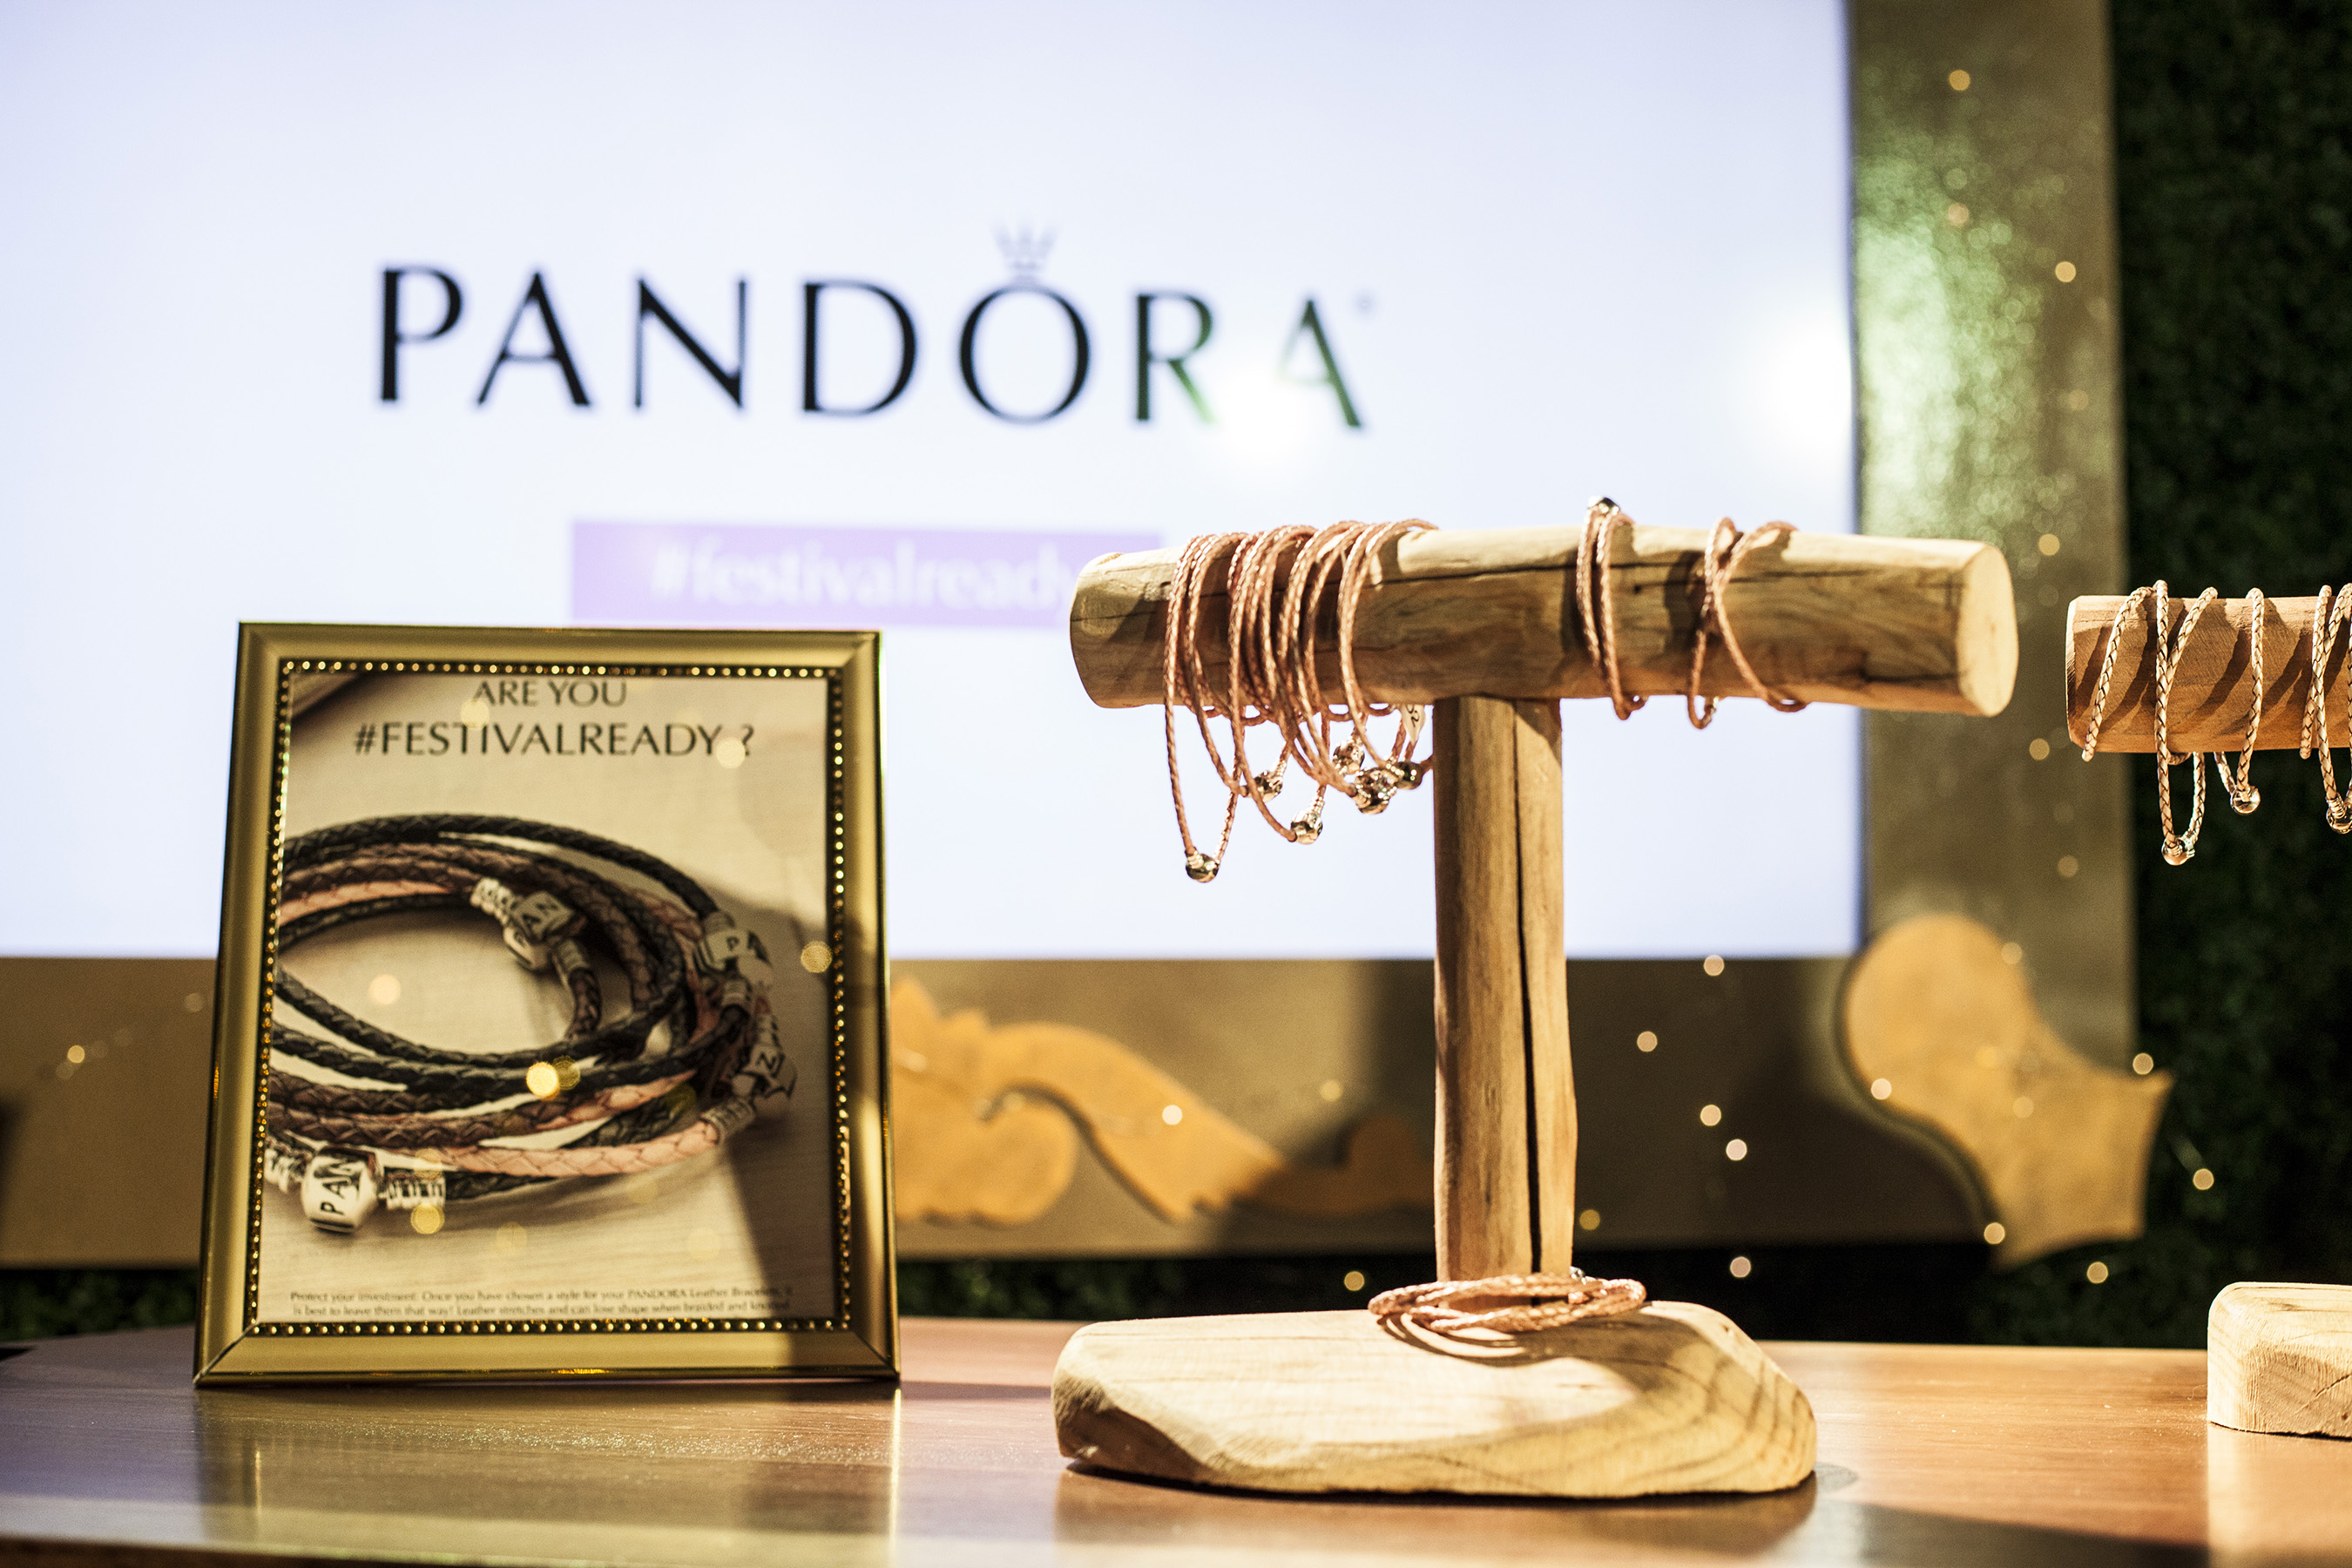 Festival goers were invited to get #FESTIVALready with PANDORA Jewelry by purchasing a leather braided bracelet